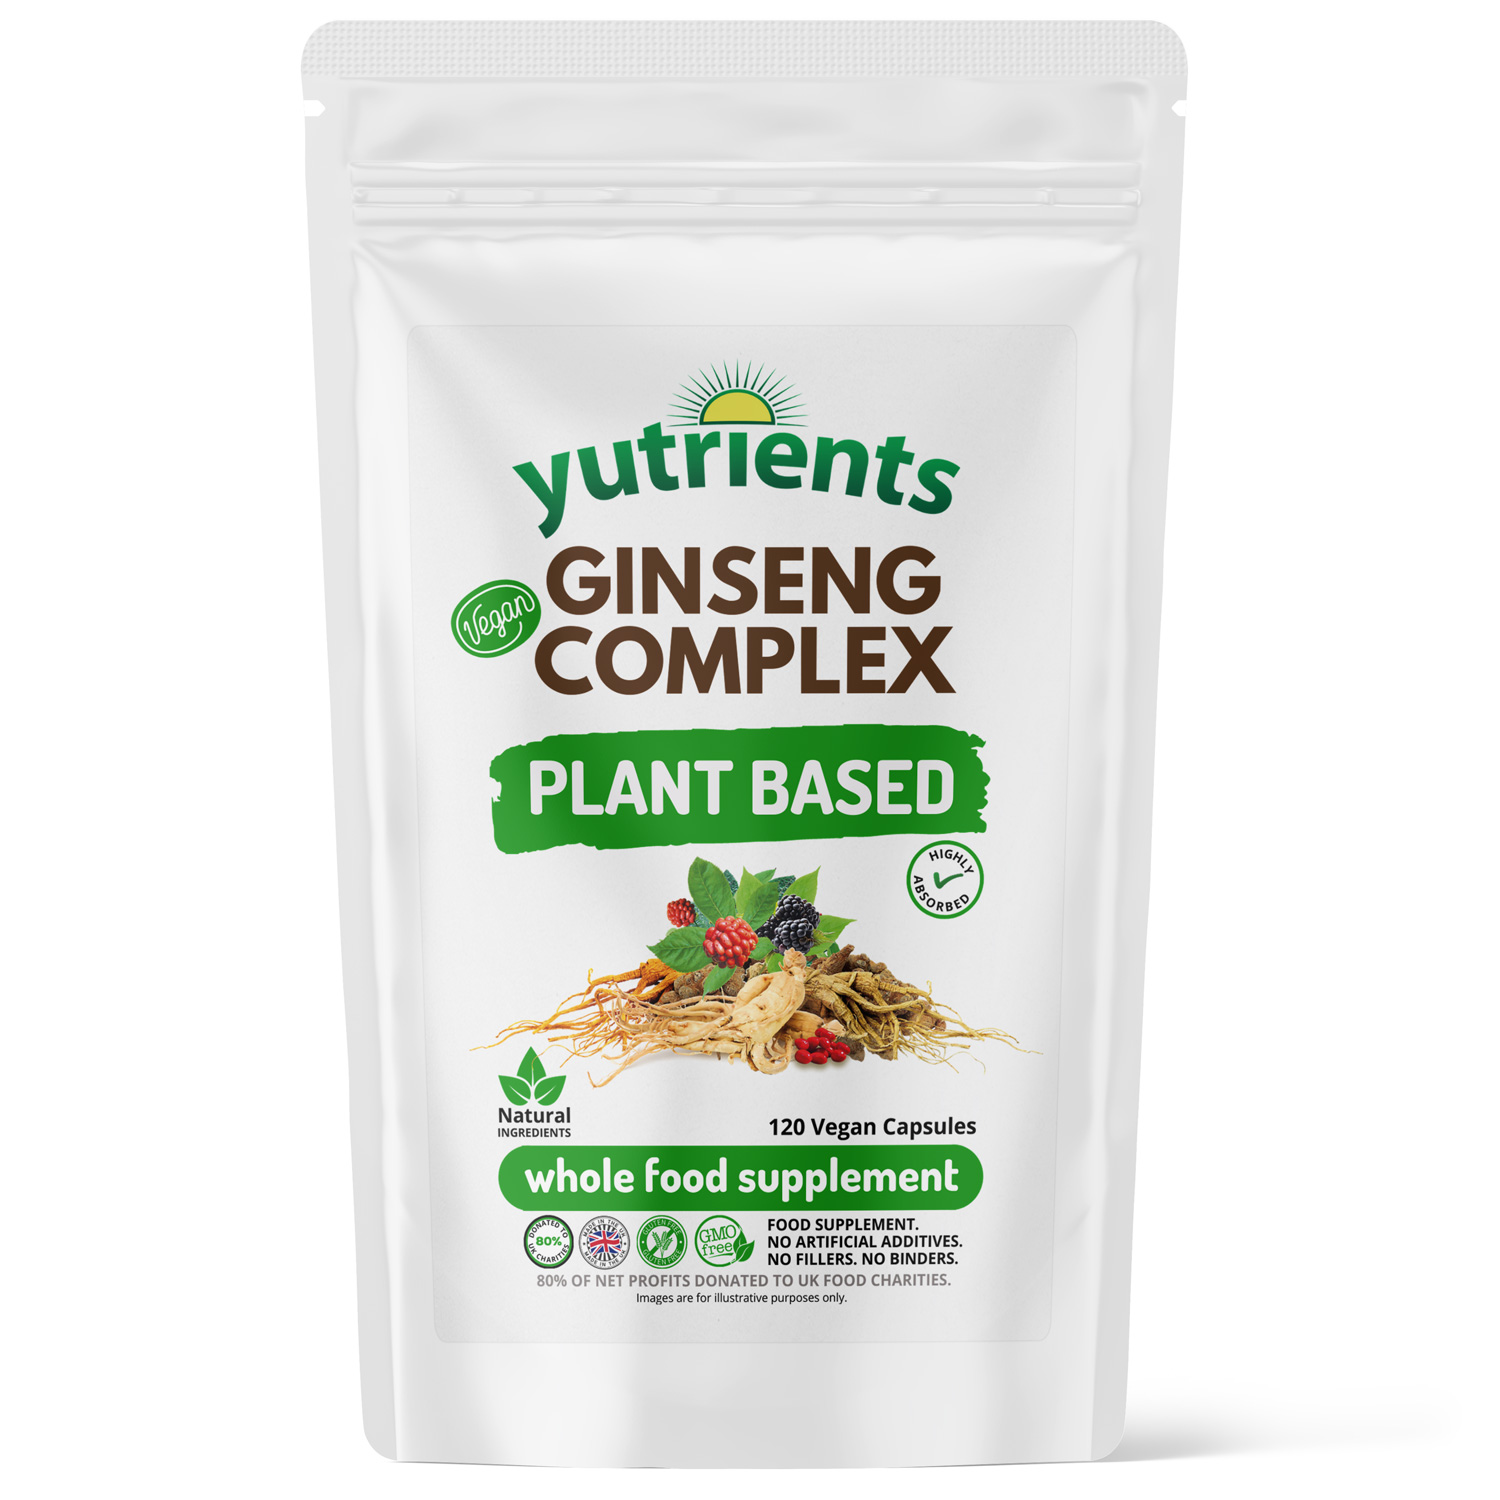 Ginseng-Complex product image